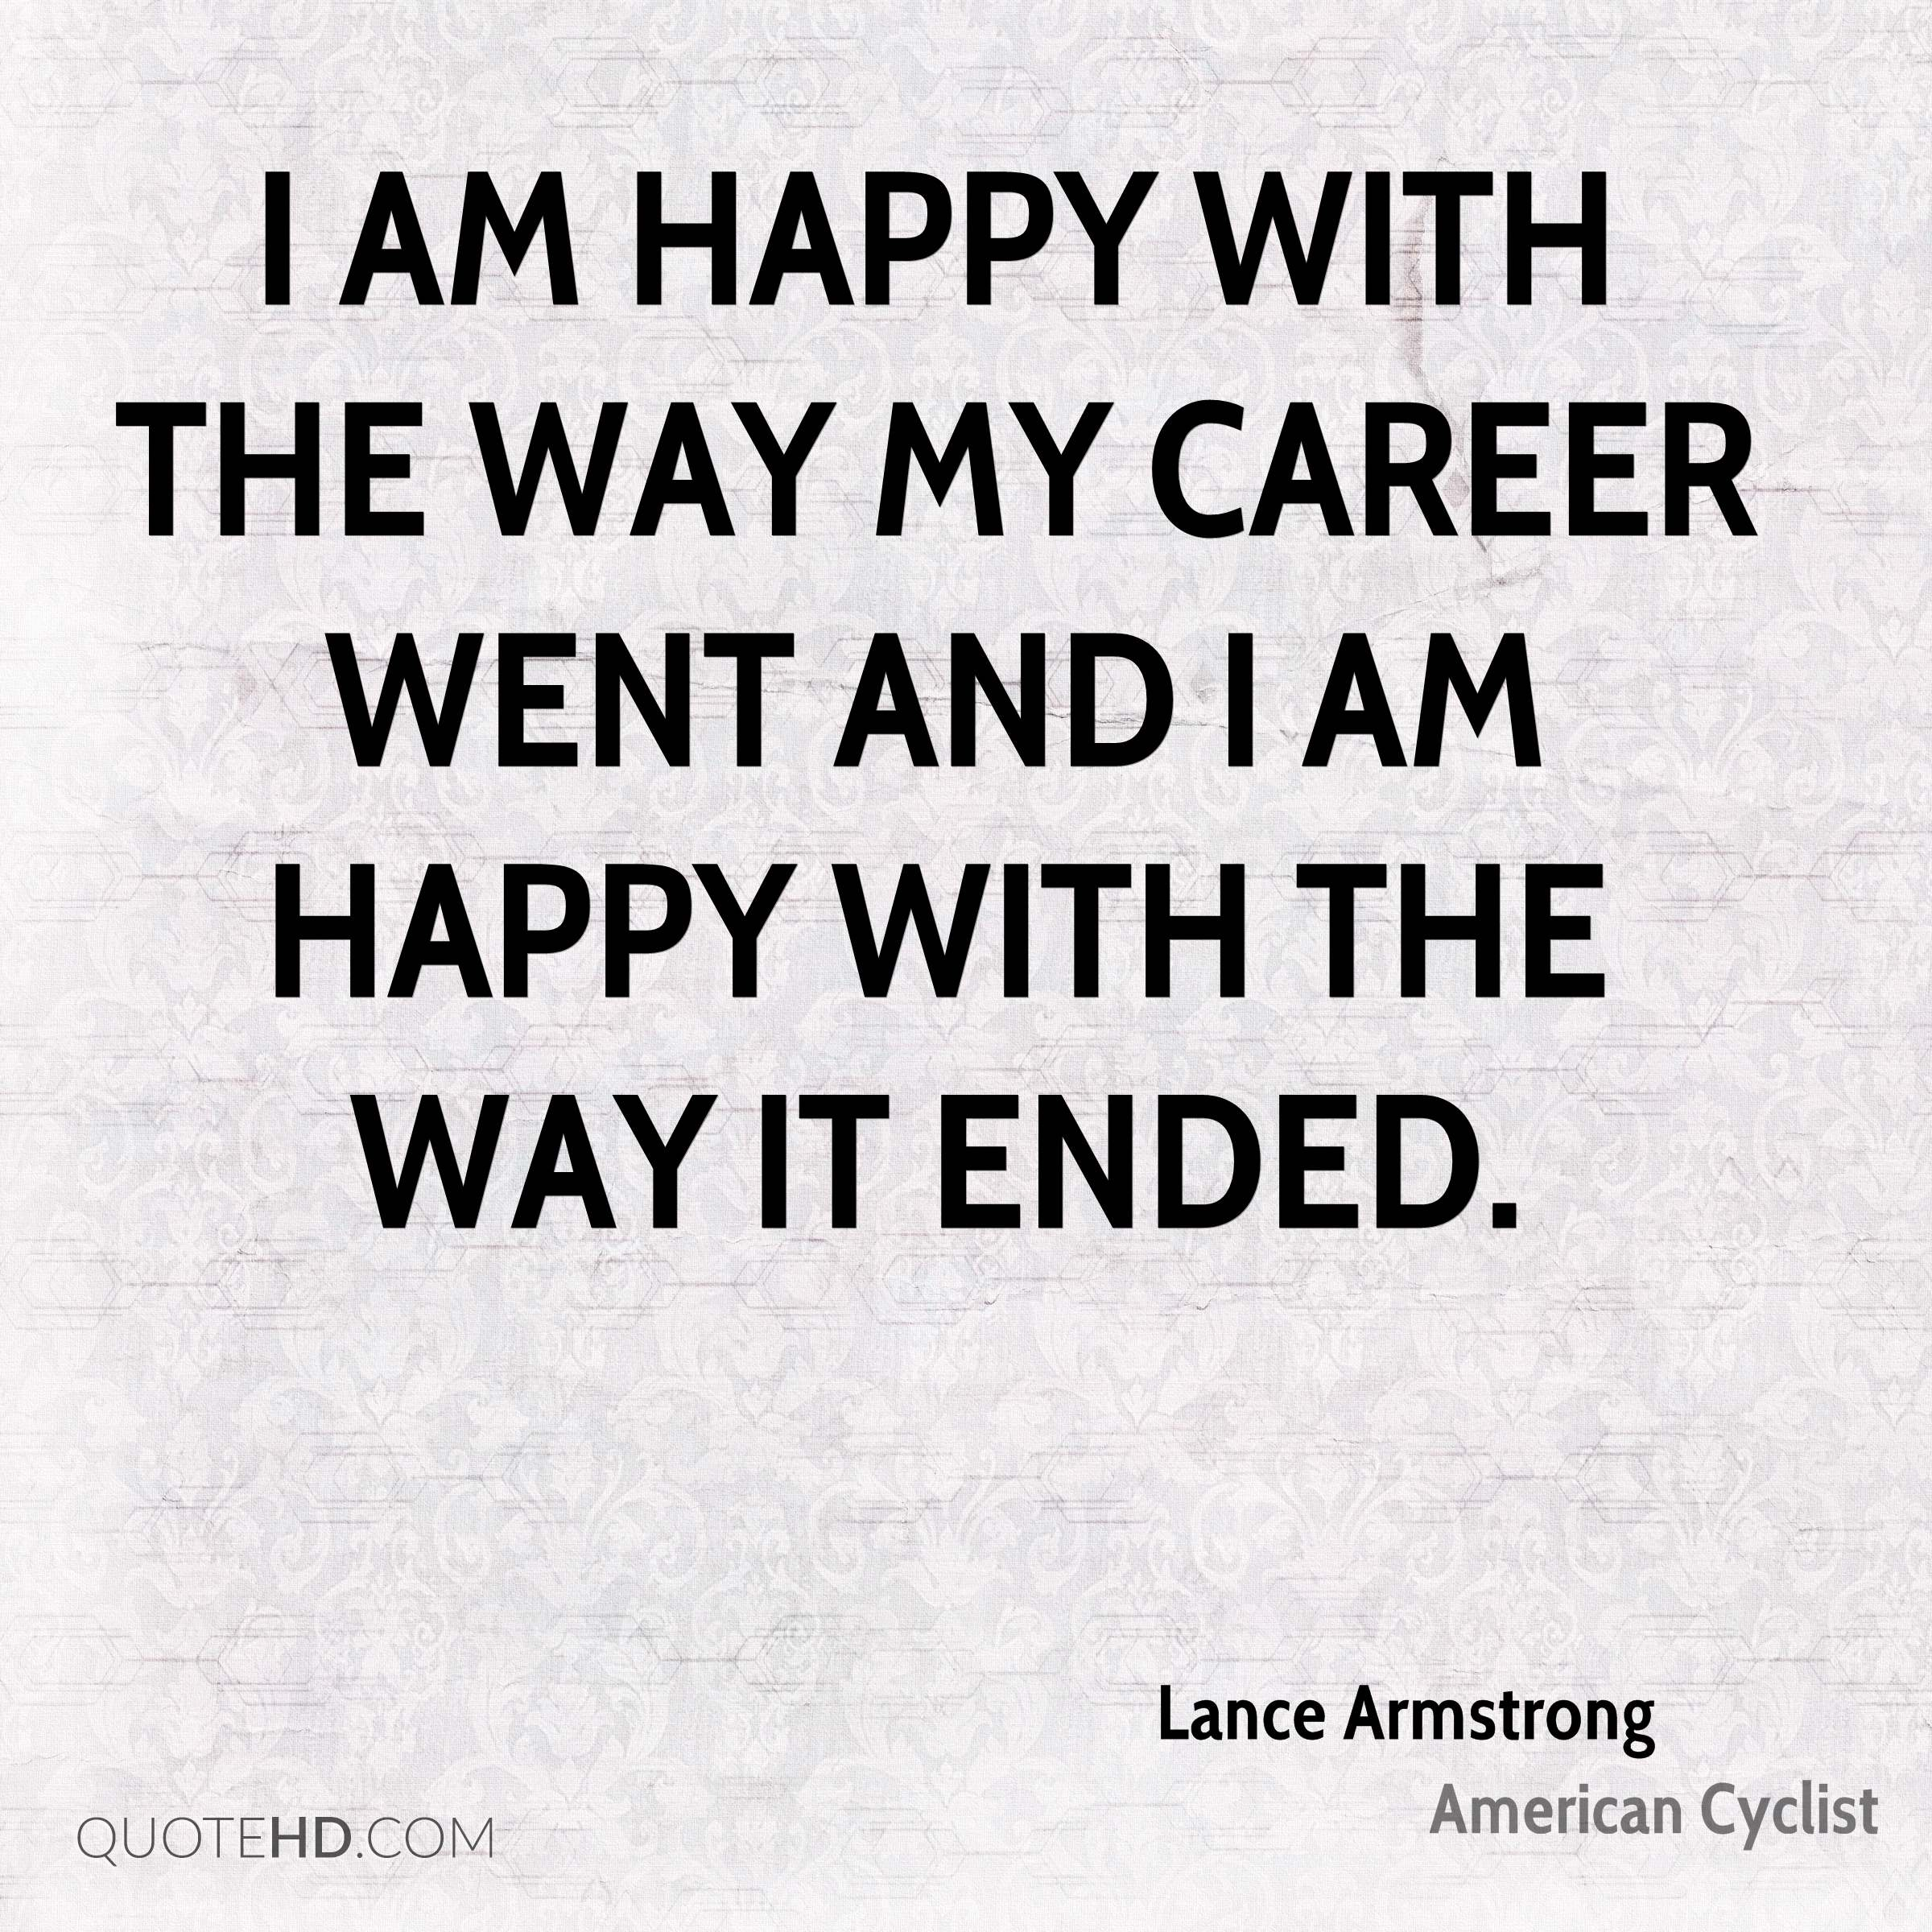 I am happy with the way my career went and I am happy with the way it ended.